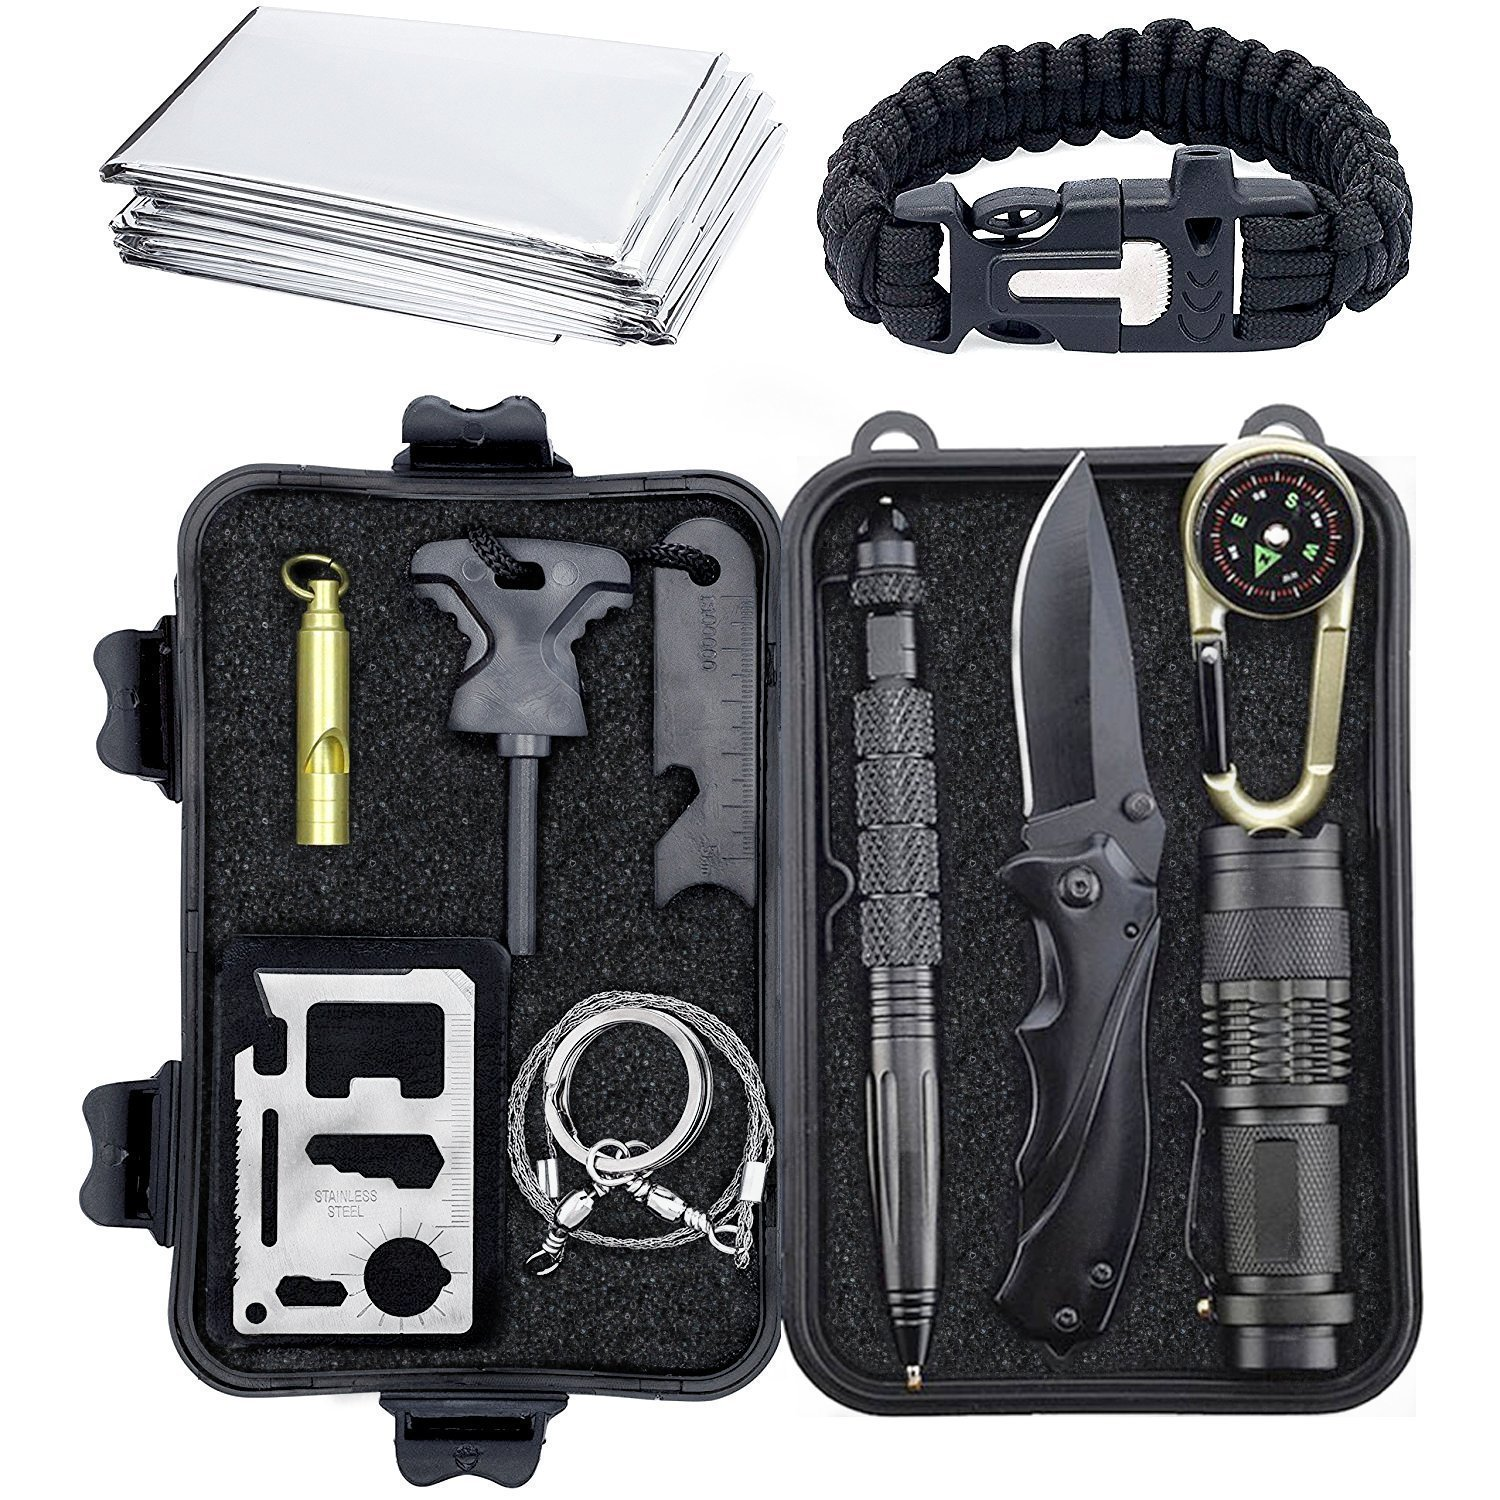 Emergency Survival Gear Kits 10 in 1 - Paracord Bracelet/Knife / Emergency Blanket/Fire Starter/Whistle / Tactical Pen/Wire Saw/Credit Card Knife/Flashlight Camping, Hiking, Climbing